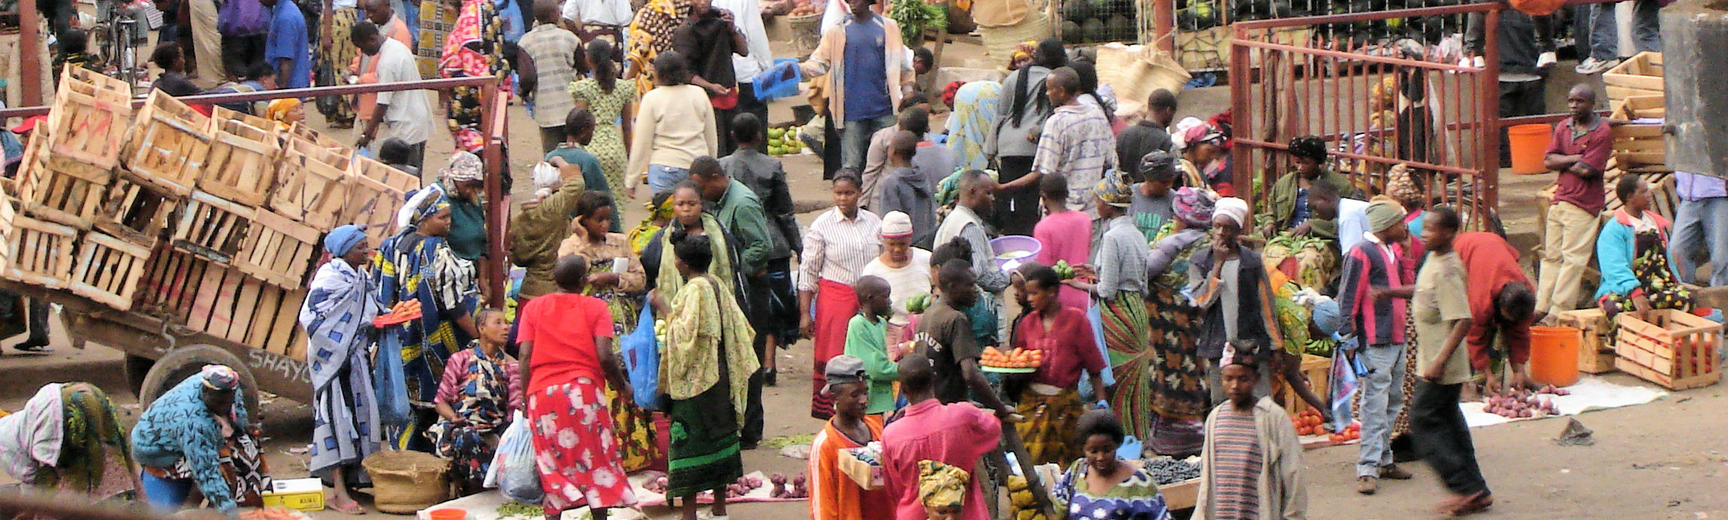 African open-air market